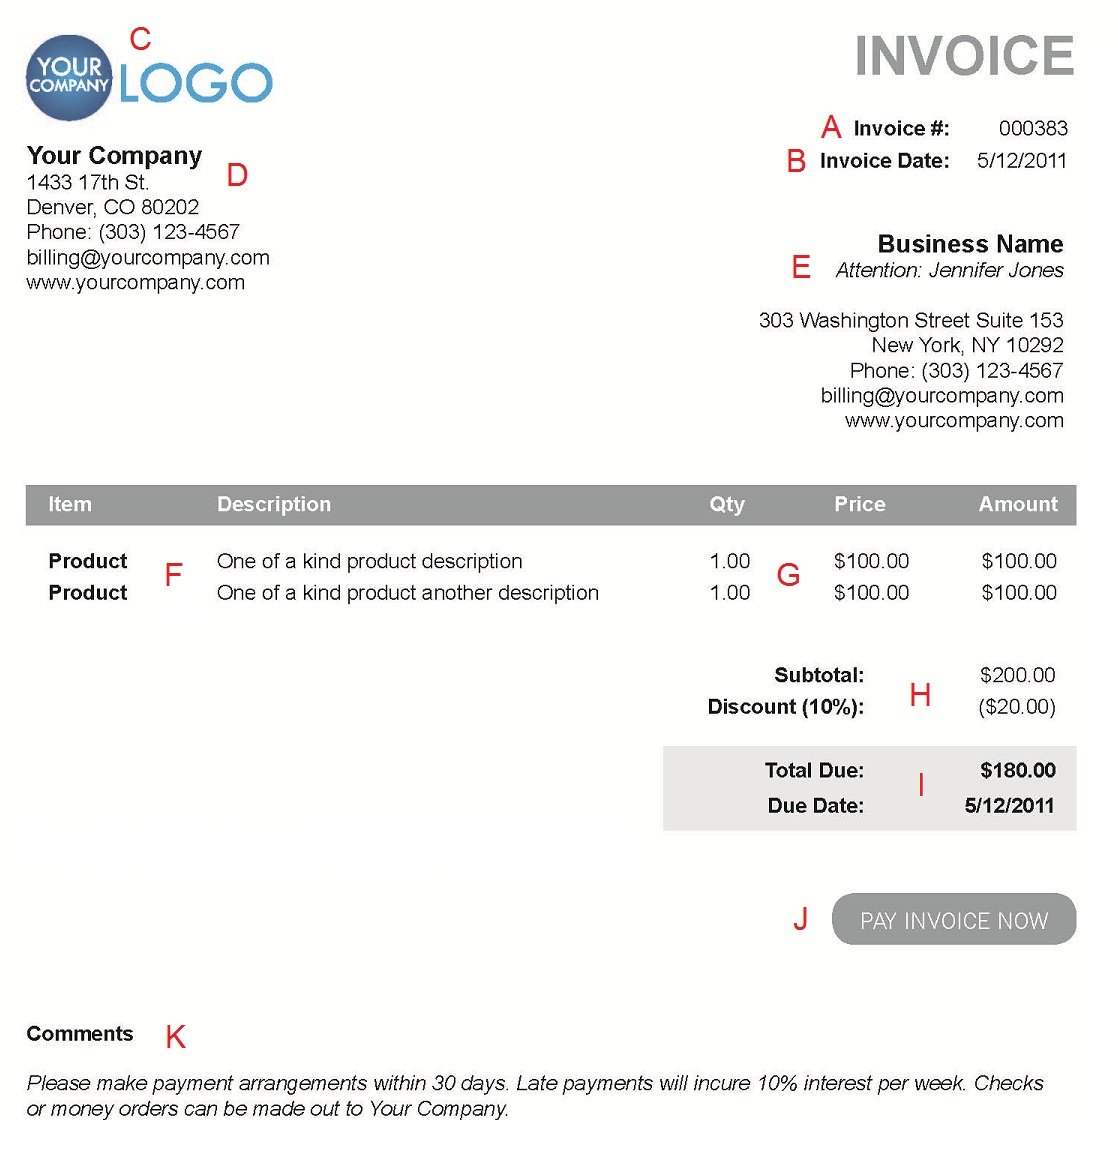 Weirdmailus  Fascinating The  Different Sections Of An Electronic Payment Invoice With Outstanding A  With Lovely Oracle Retail Invoice Matching Also How To Find The Invoice Price Of A Car In Addition Free Invoice Program And New Car Invoice Price As Well As Paypal Send Invoice Fee Additionally Sample Invoice Form From Paysimplecom With Weirdmailus  Outstanding The  Different Sections Of An Electronic Payment Invoice With Lovely A  And Fascinating Oracle Retail Invoice Matching Also How To Find The Invoice Price Of A Car In Addition Free Invoice Program From Paysimplecom